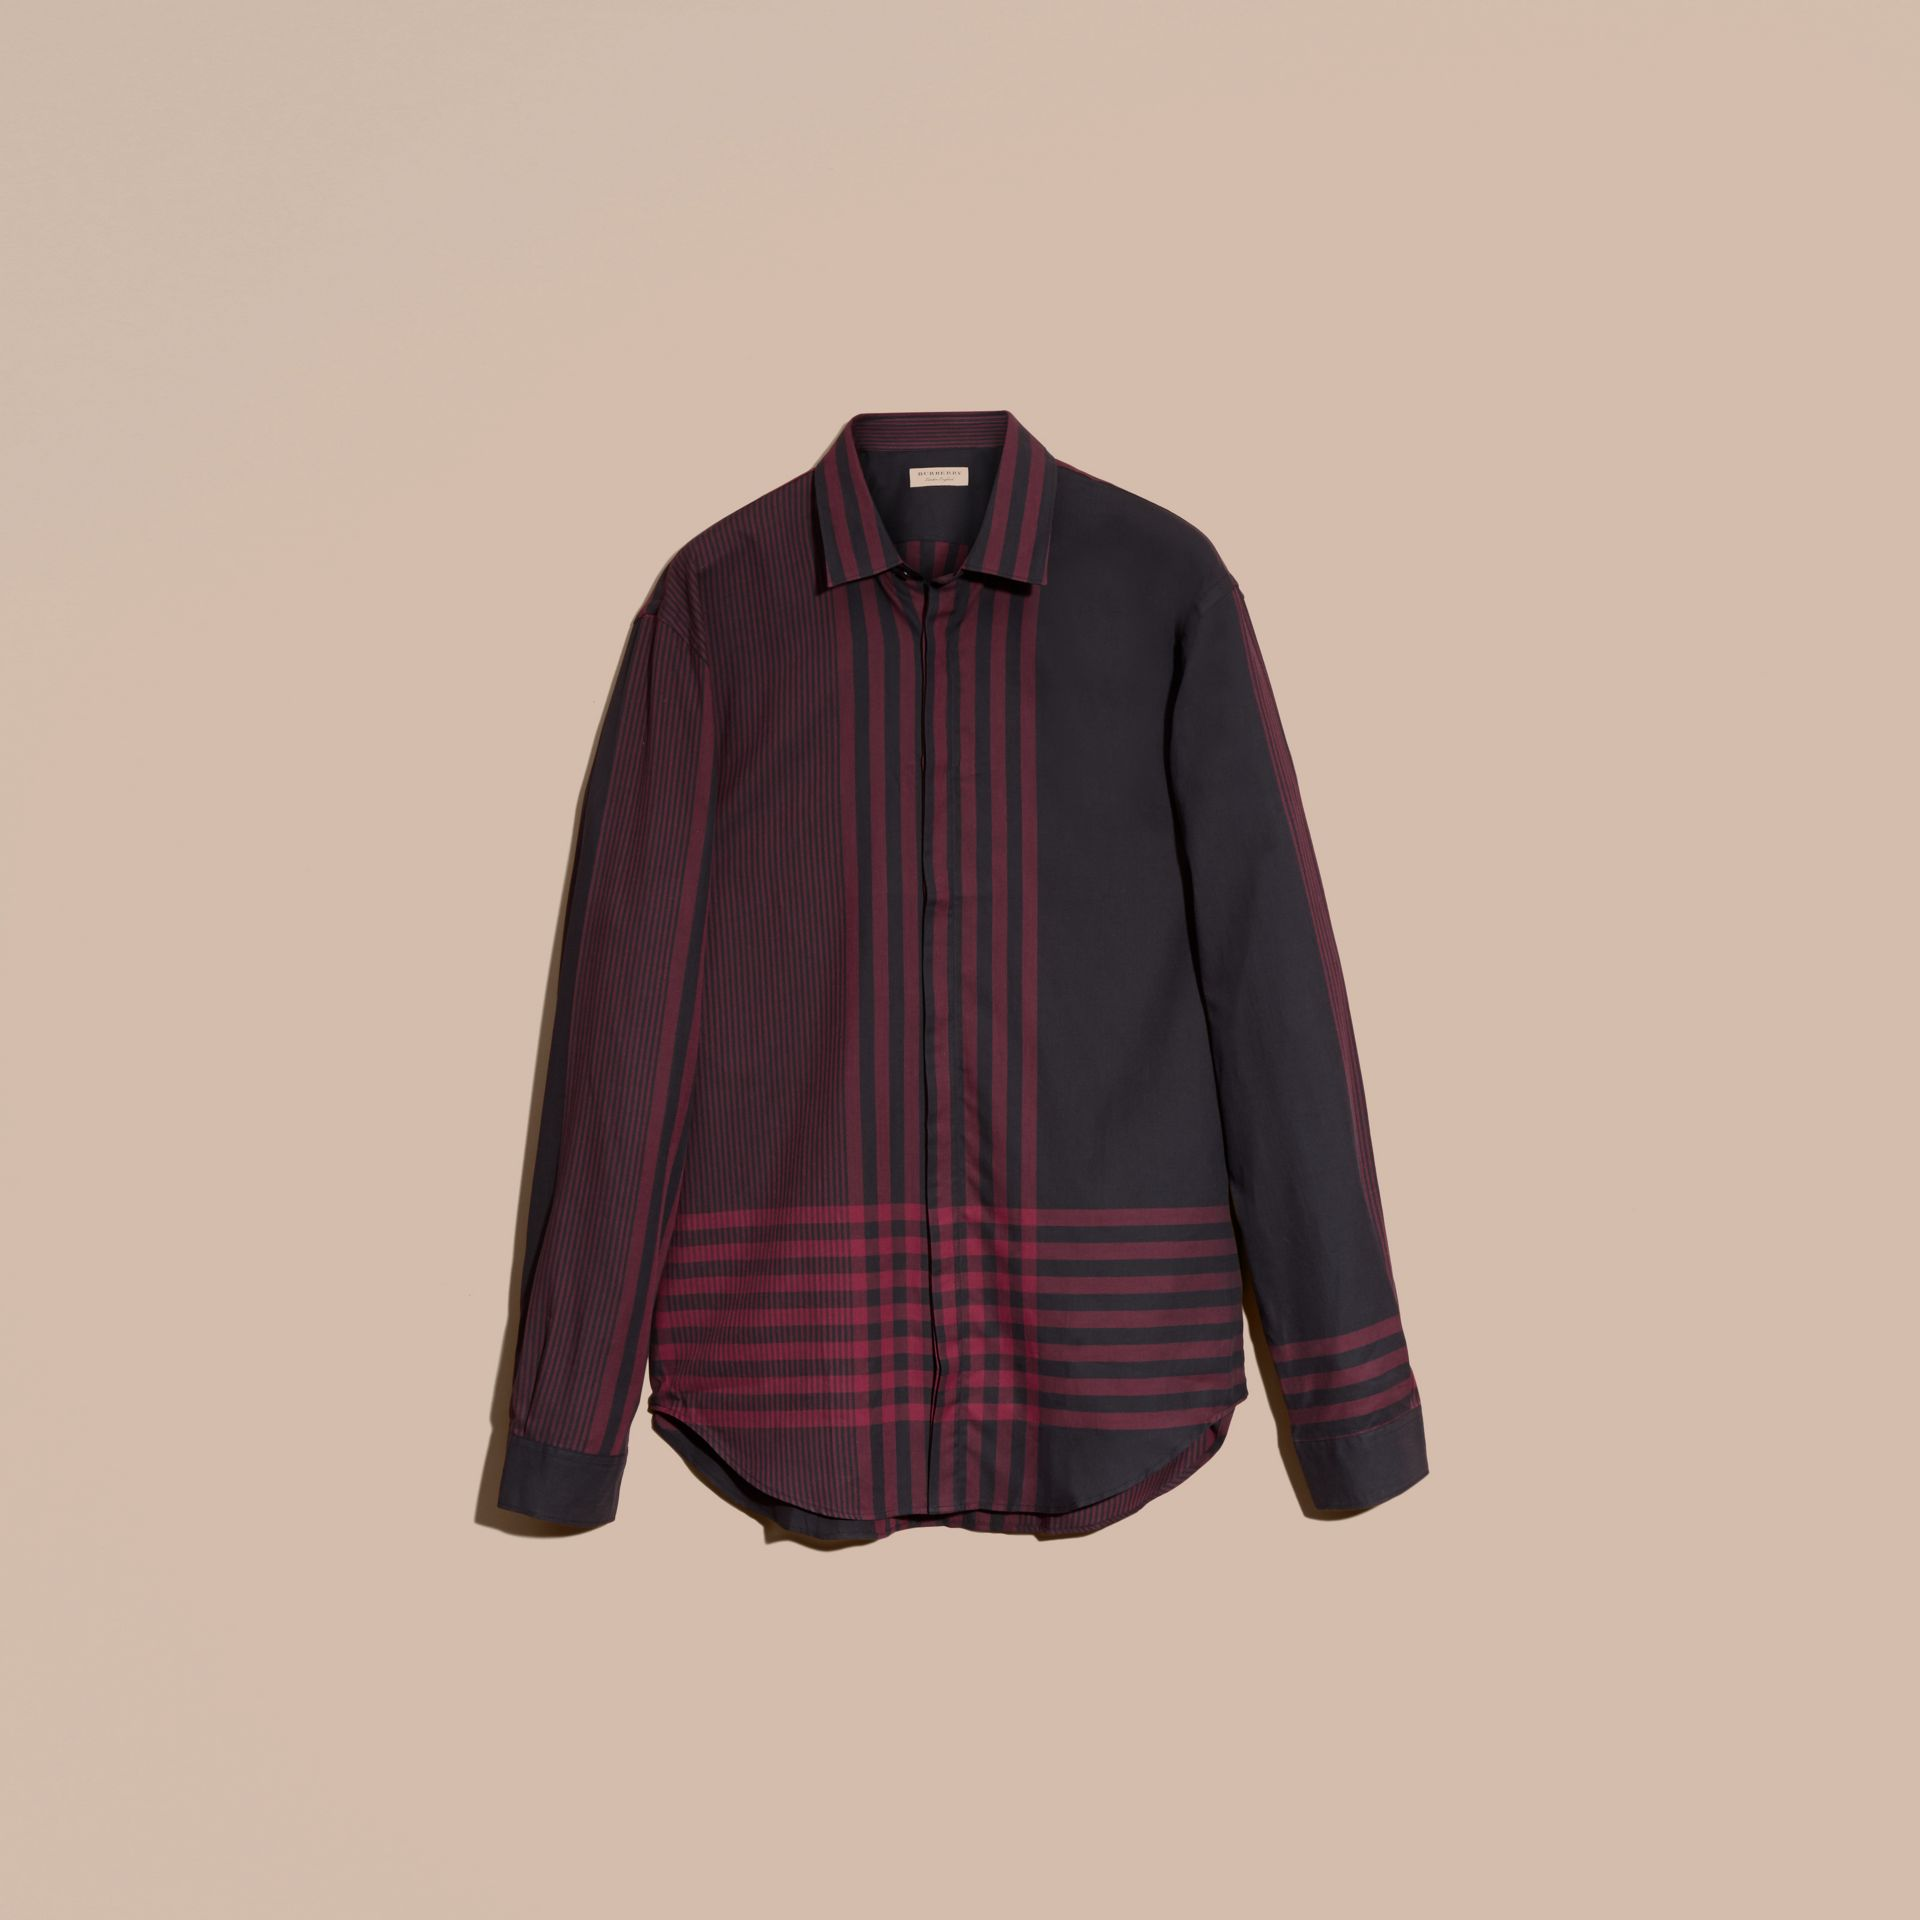 Burgundy red Graphic Check Cotton Shirt Burgundy Red - gallery image 4